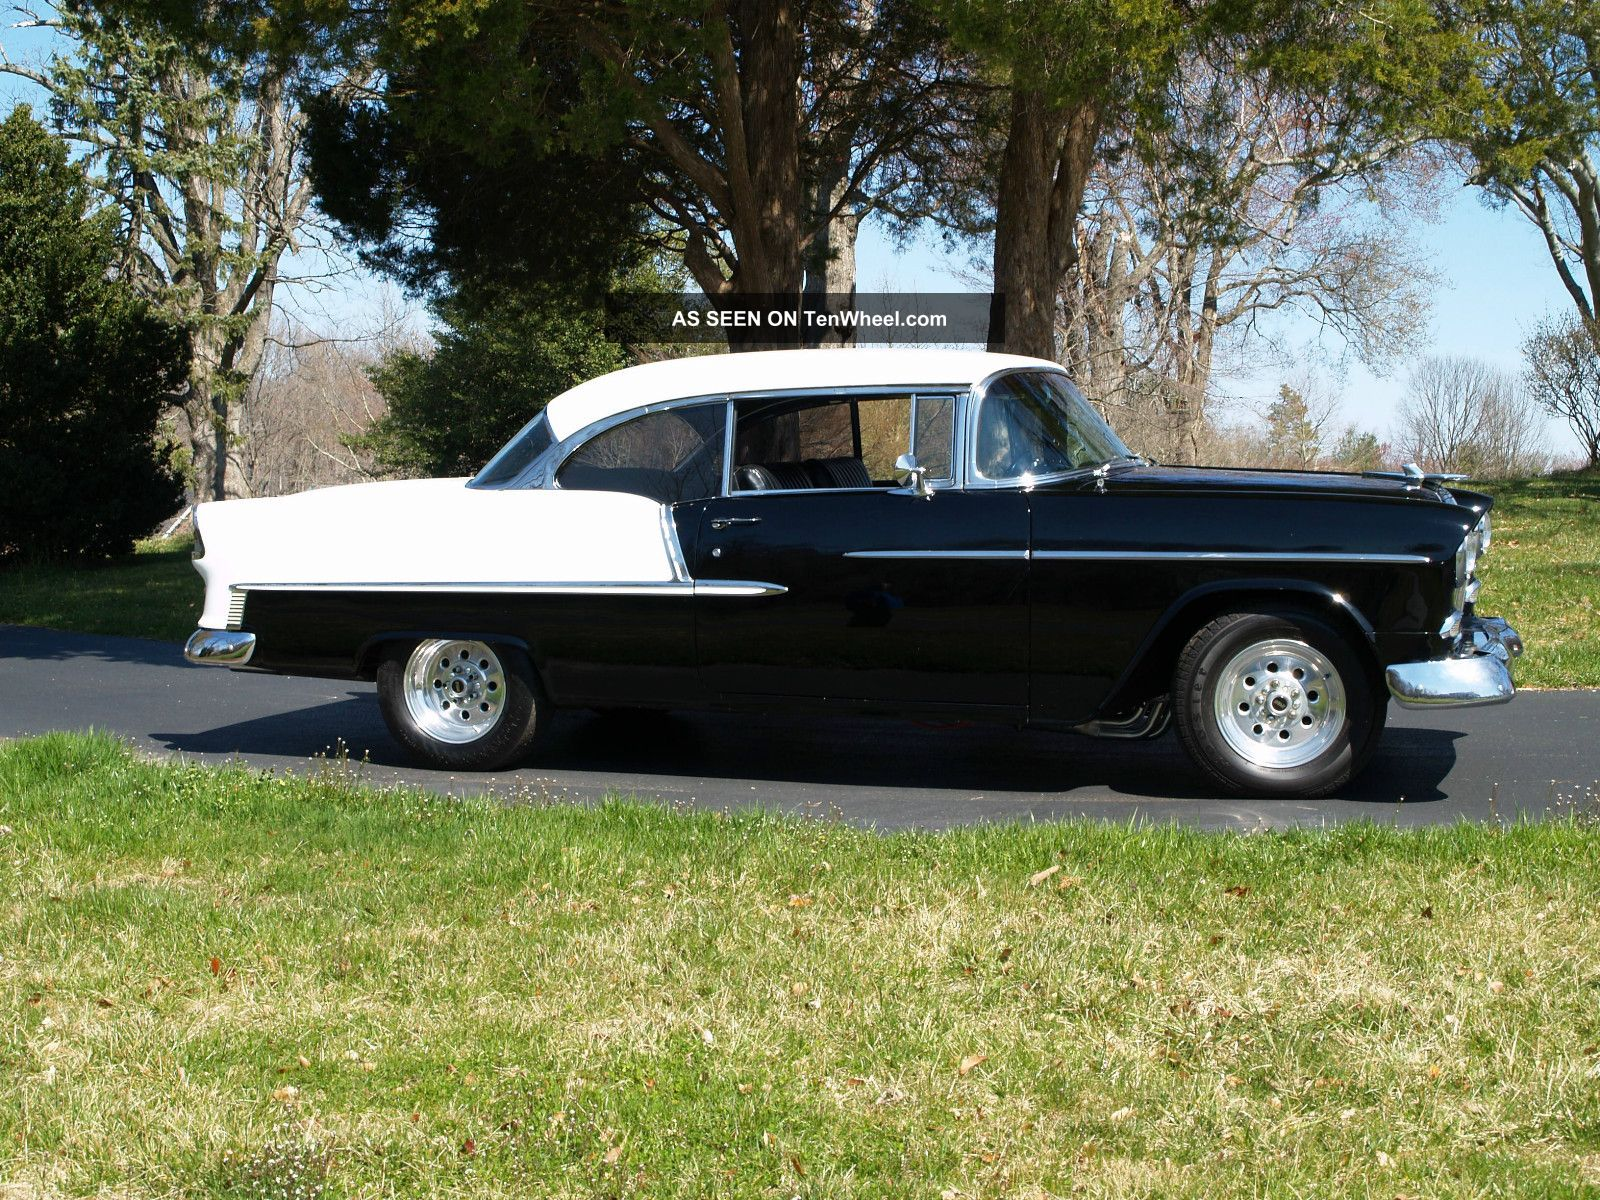 1955 Plymouth Belvedere 2 Door Sport Coupe Images Of Home Design Wiring Diagrams 1964 6 And V8 Savoy Fury Part Chevrolet Hardtop